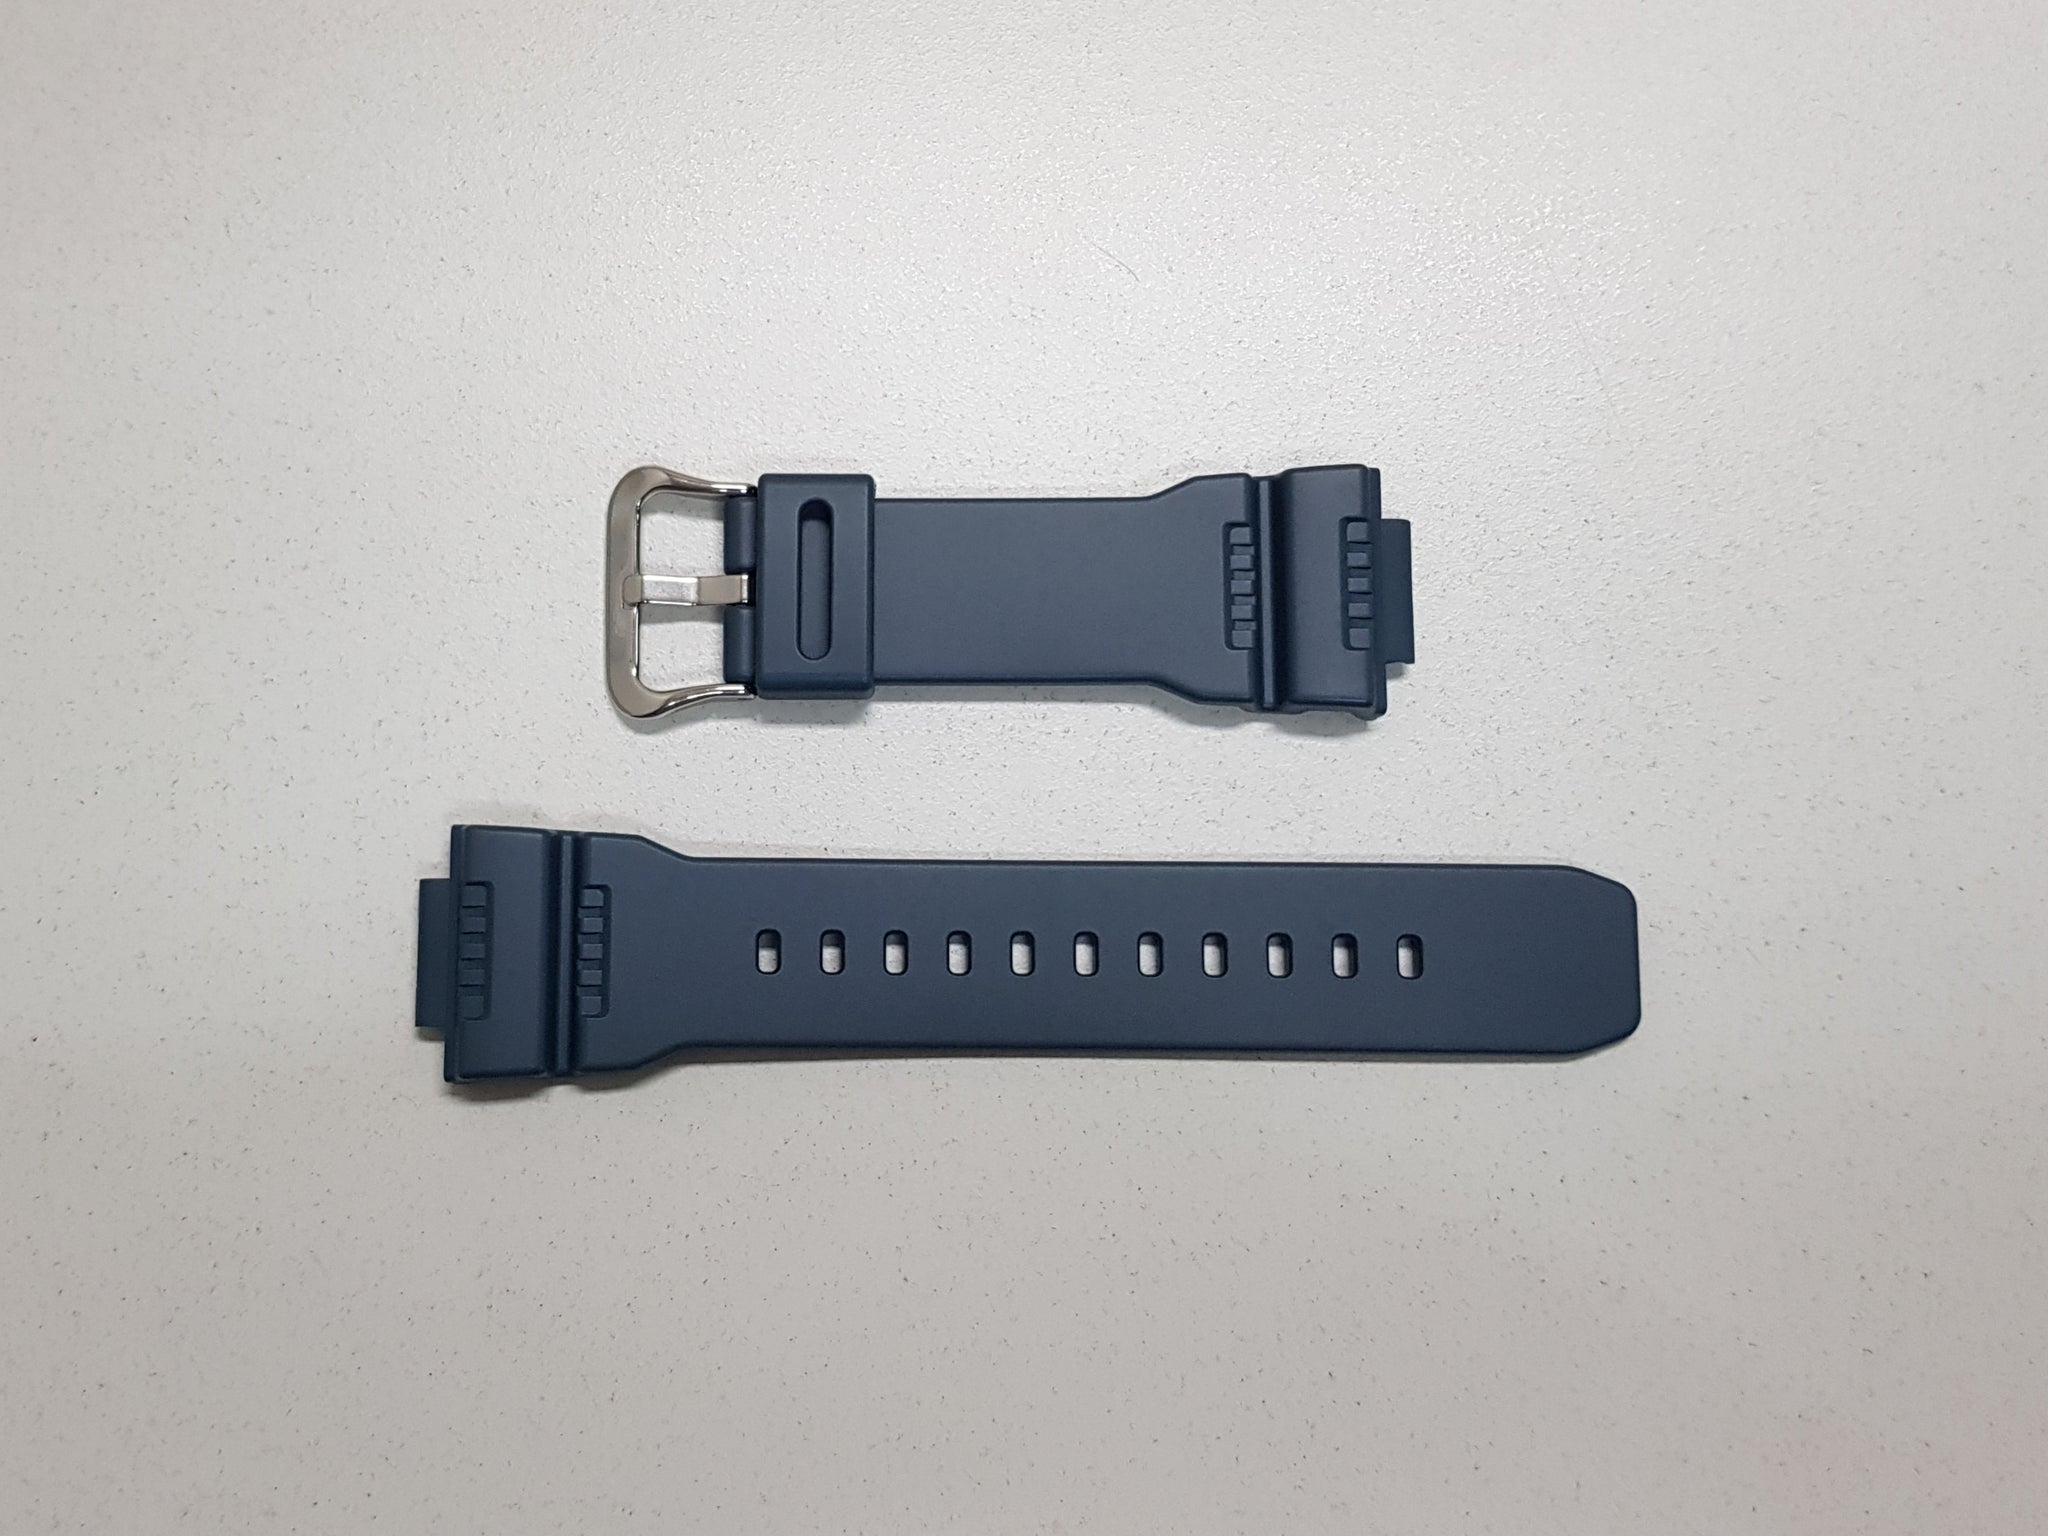 MATTE NAVY BLUE RESIN BAND (10330752) - G-SHOCK